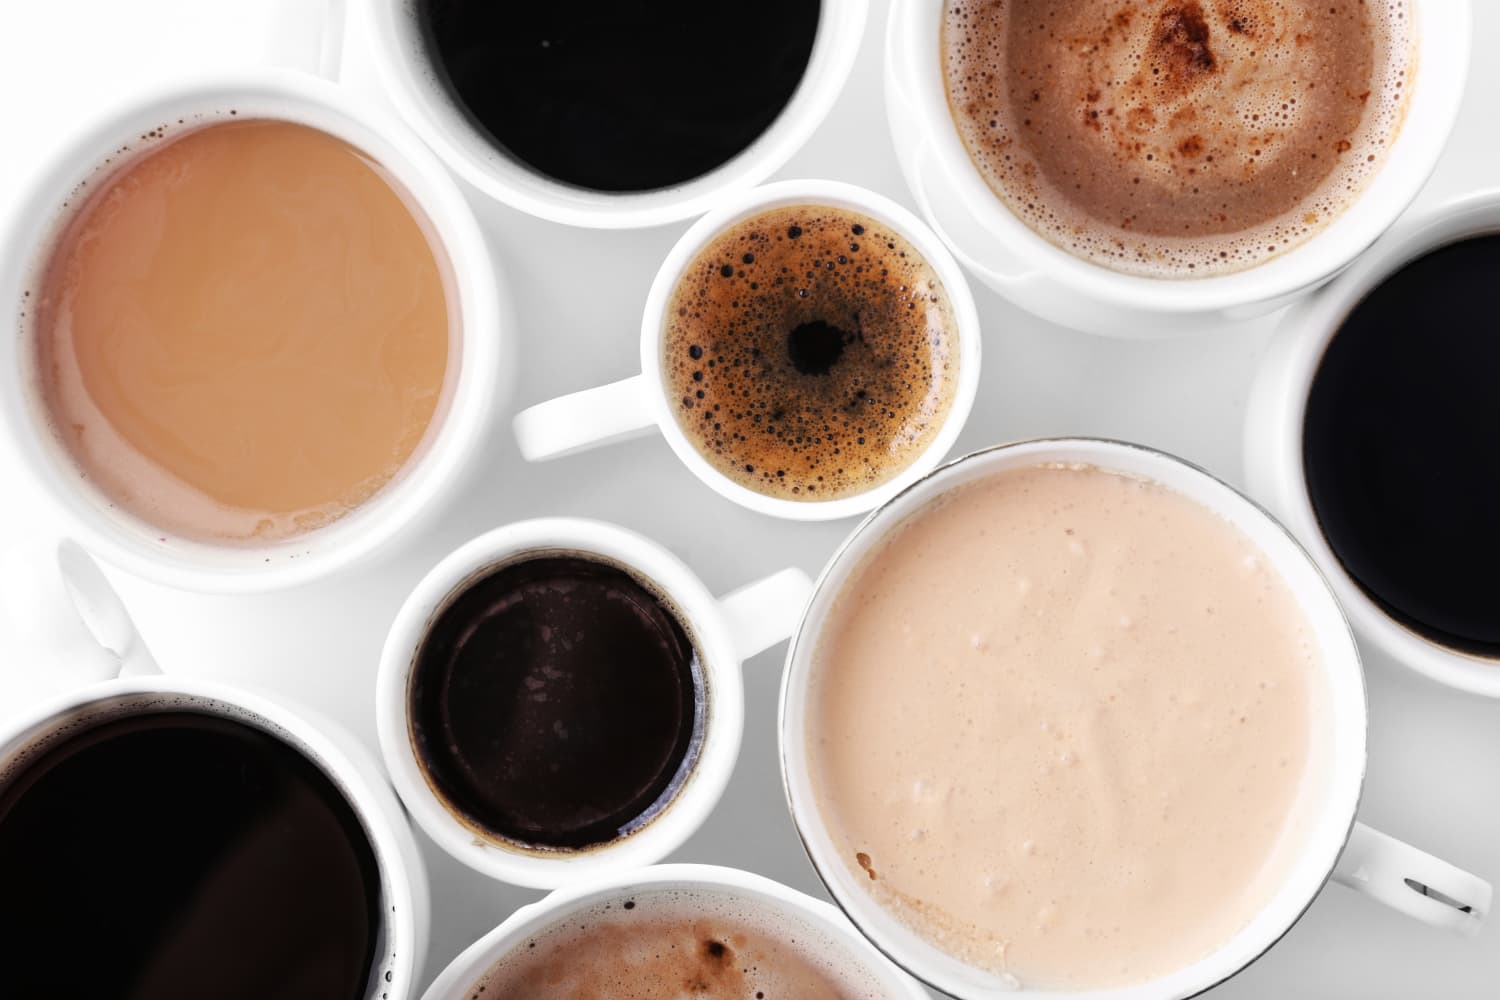 This Coffee Chart Is Dividing the Internet